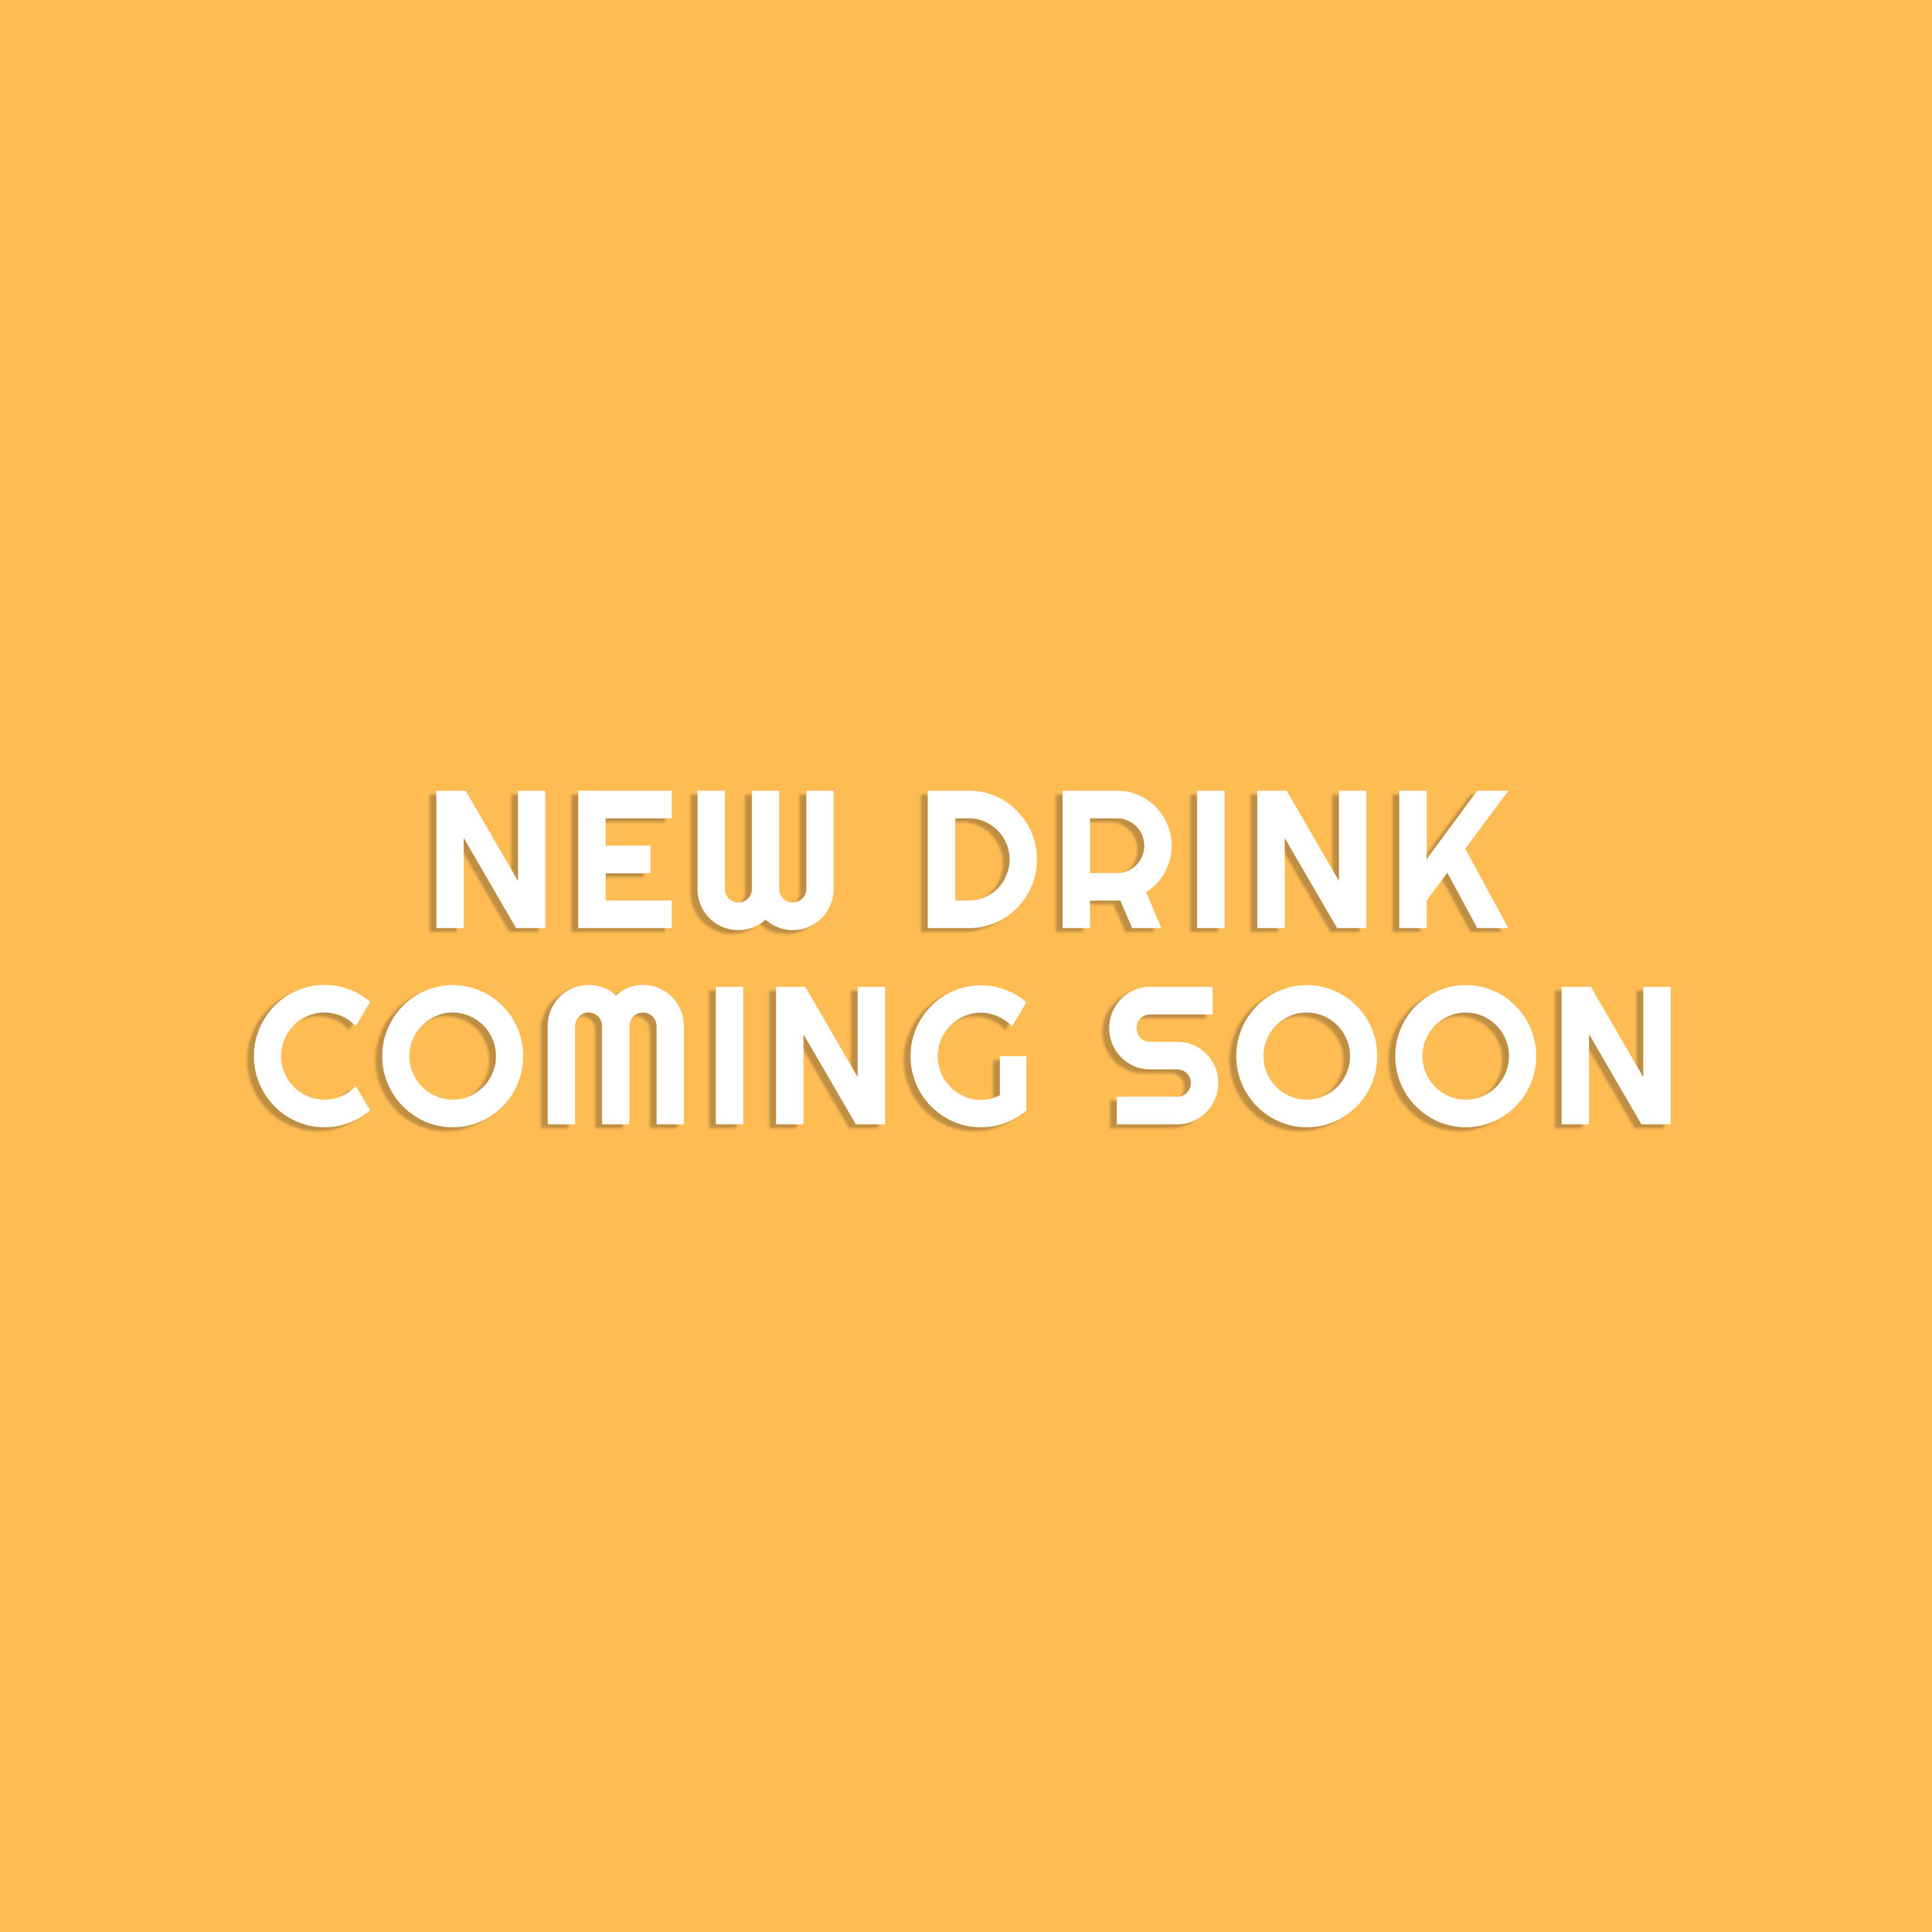 NEW DRINK   MORE DETAILS TO COME.